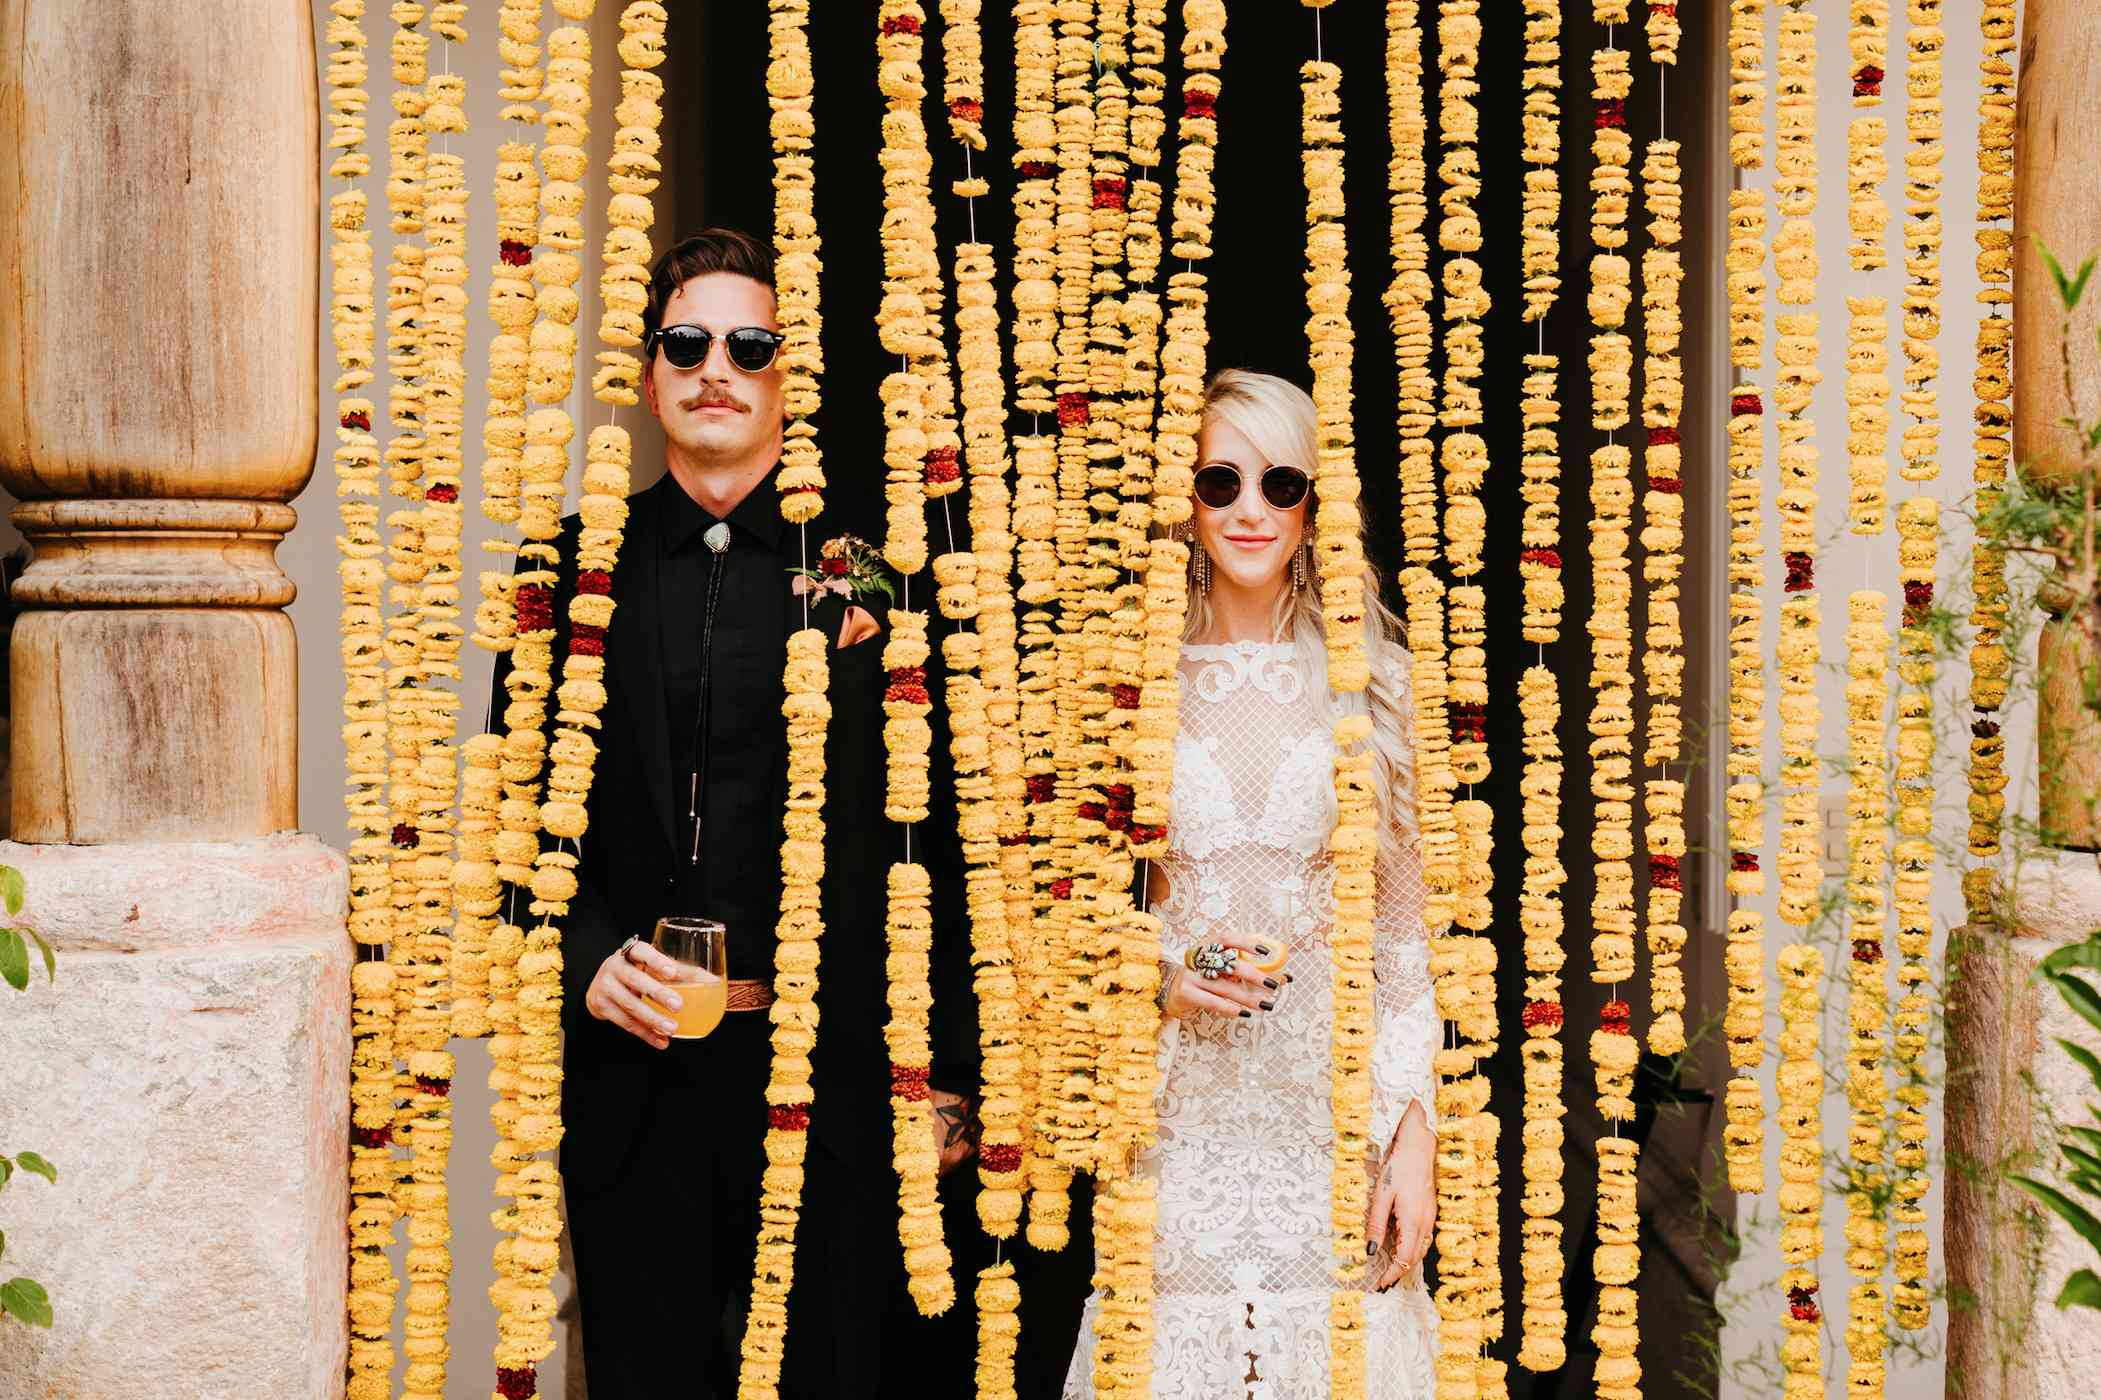 Newlyweds in front of yellow flower garlands